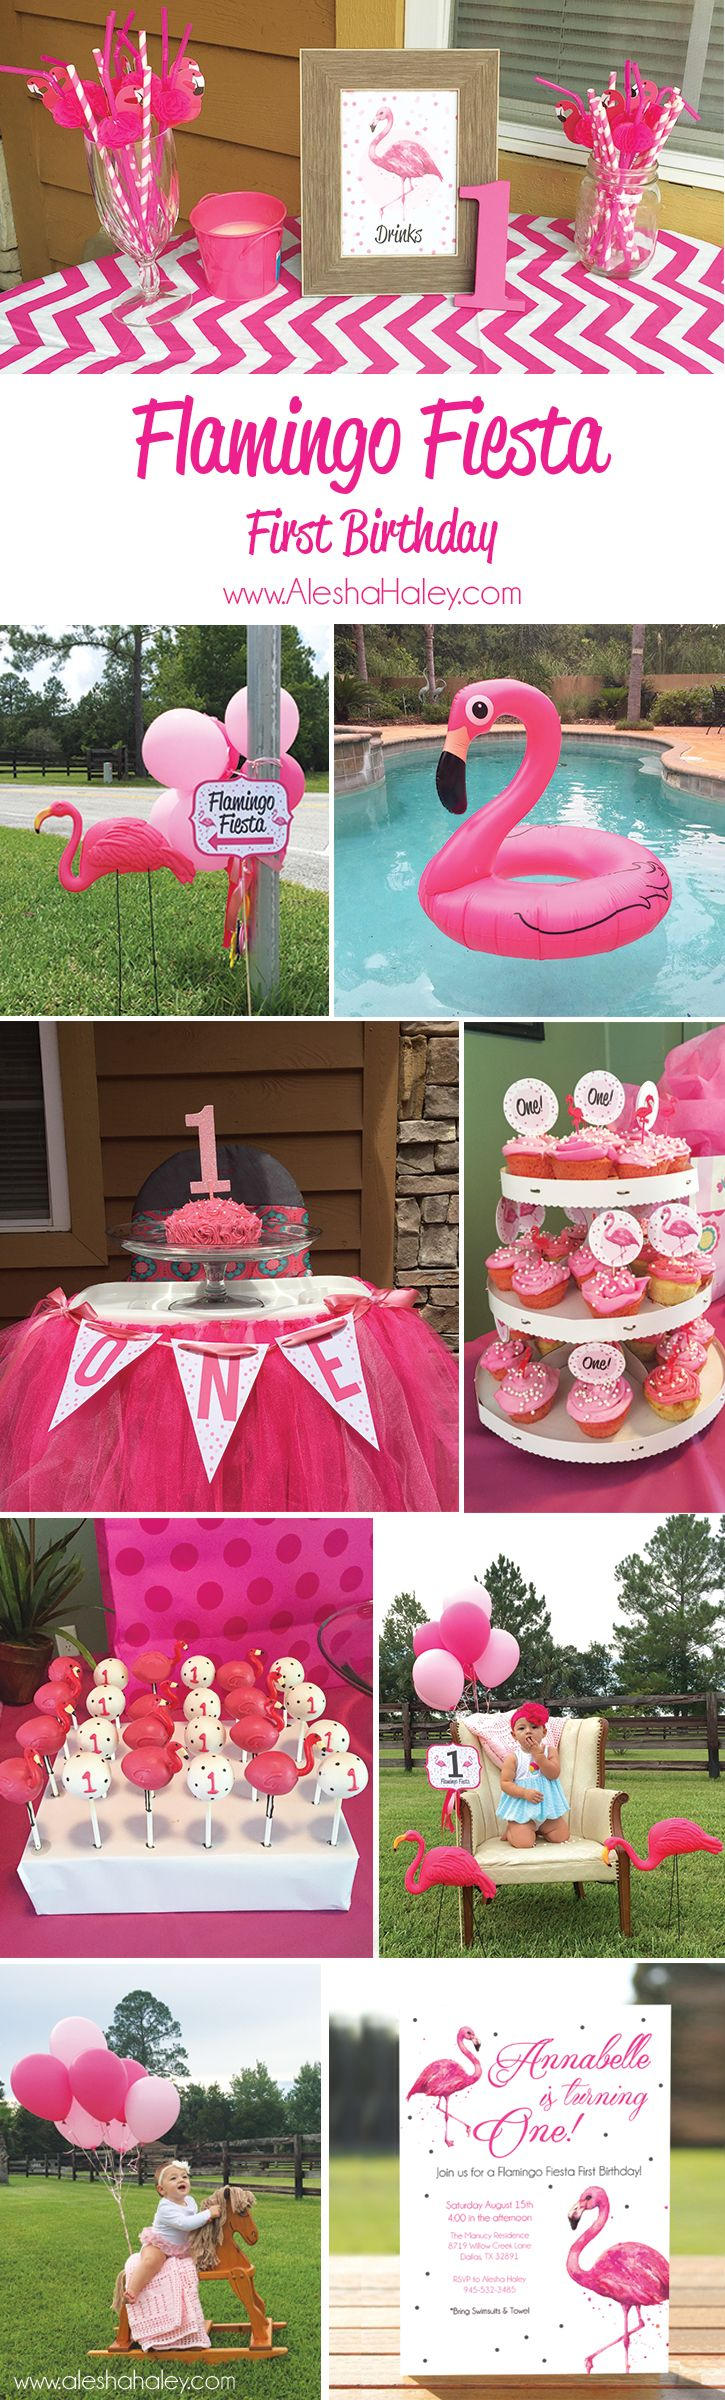 best ideas about first birthday girls girl first 17 best ideas about first birthday girls girl first birthday baby first birthday and baby girl first birthday